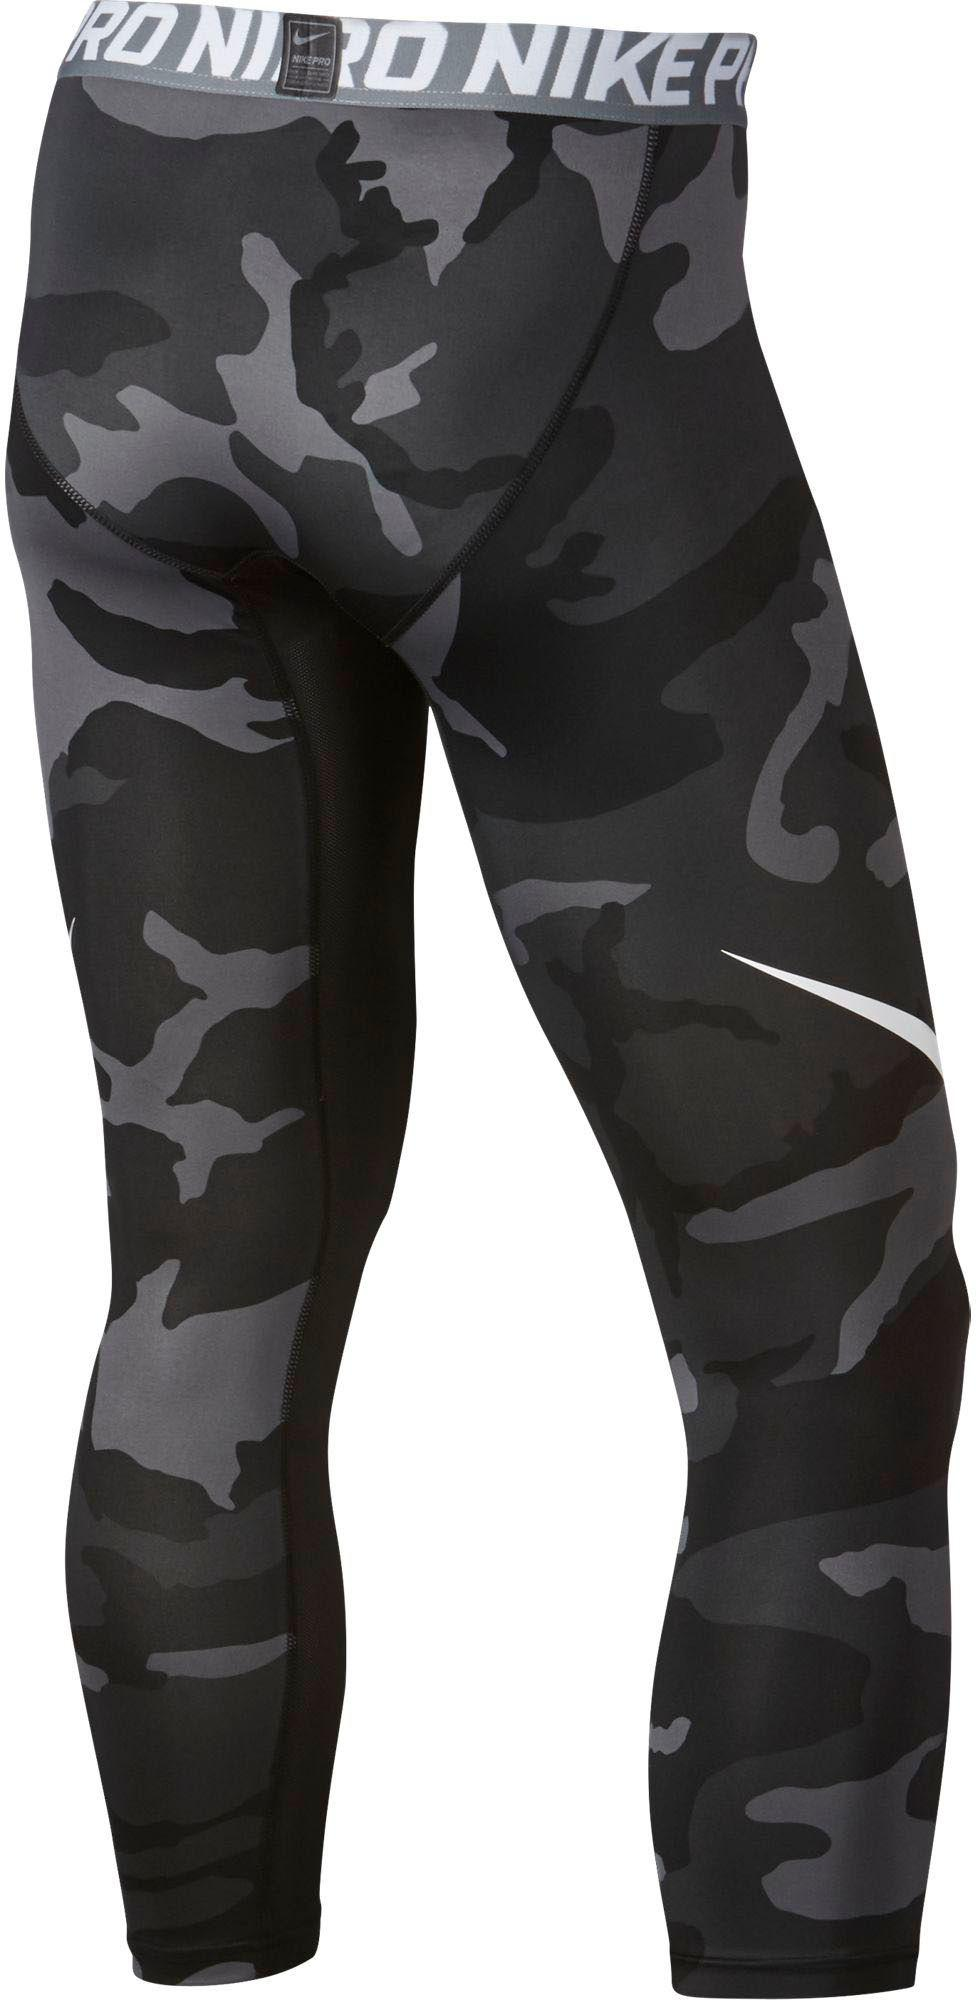 08b4a845fcbf3 Nike Pro Cool Camo Printed Quarter Length Football Tights in Black ...